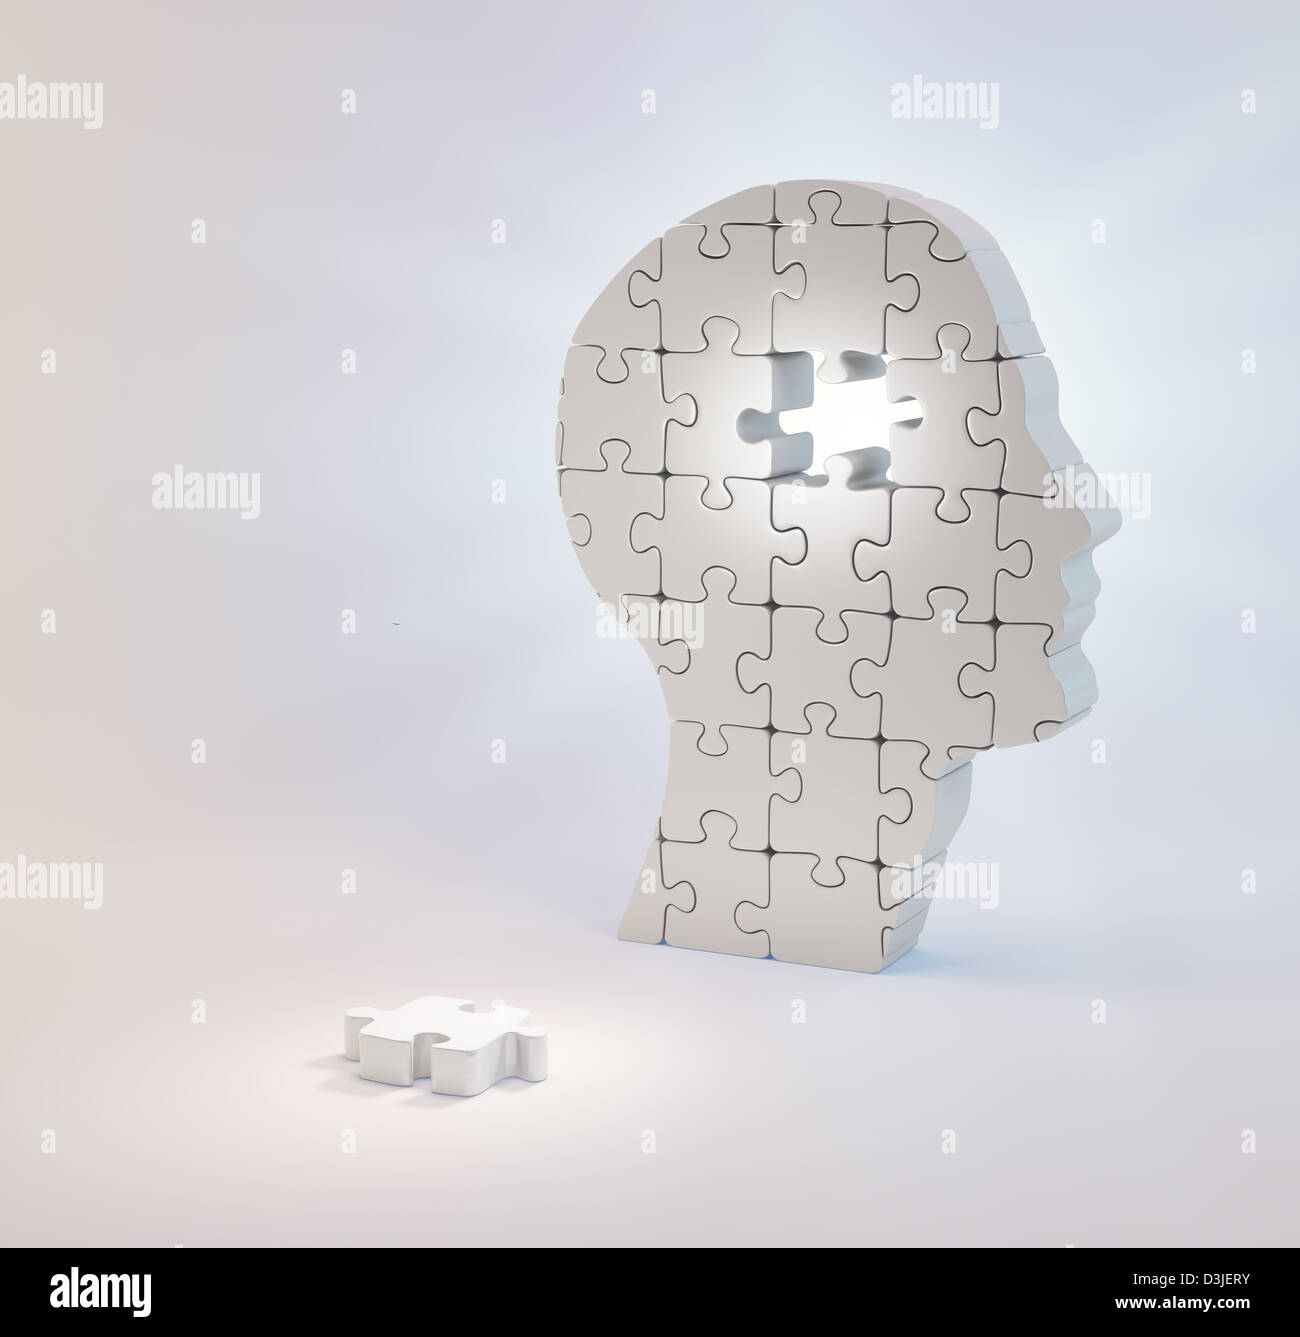 A head build out of puzzle pieces missing a single piece - psychology and mental health concept - Stock Image